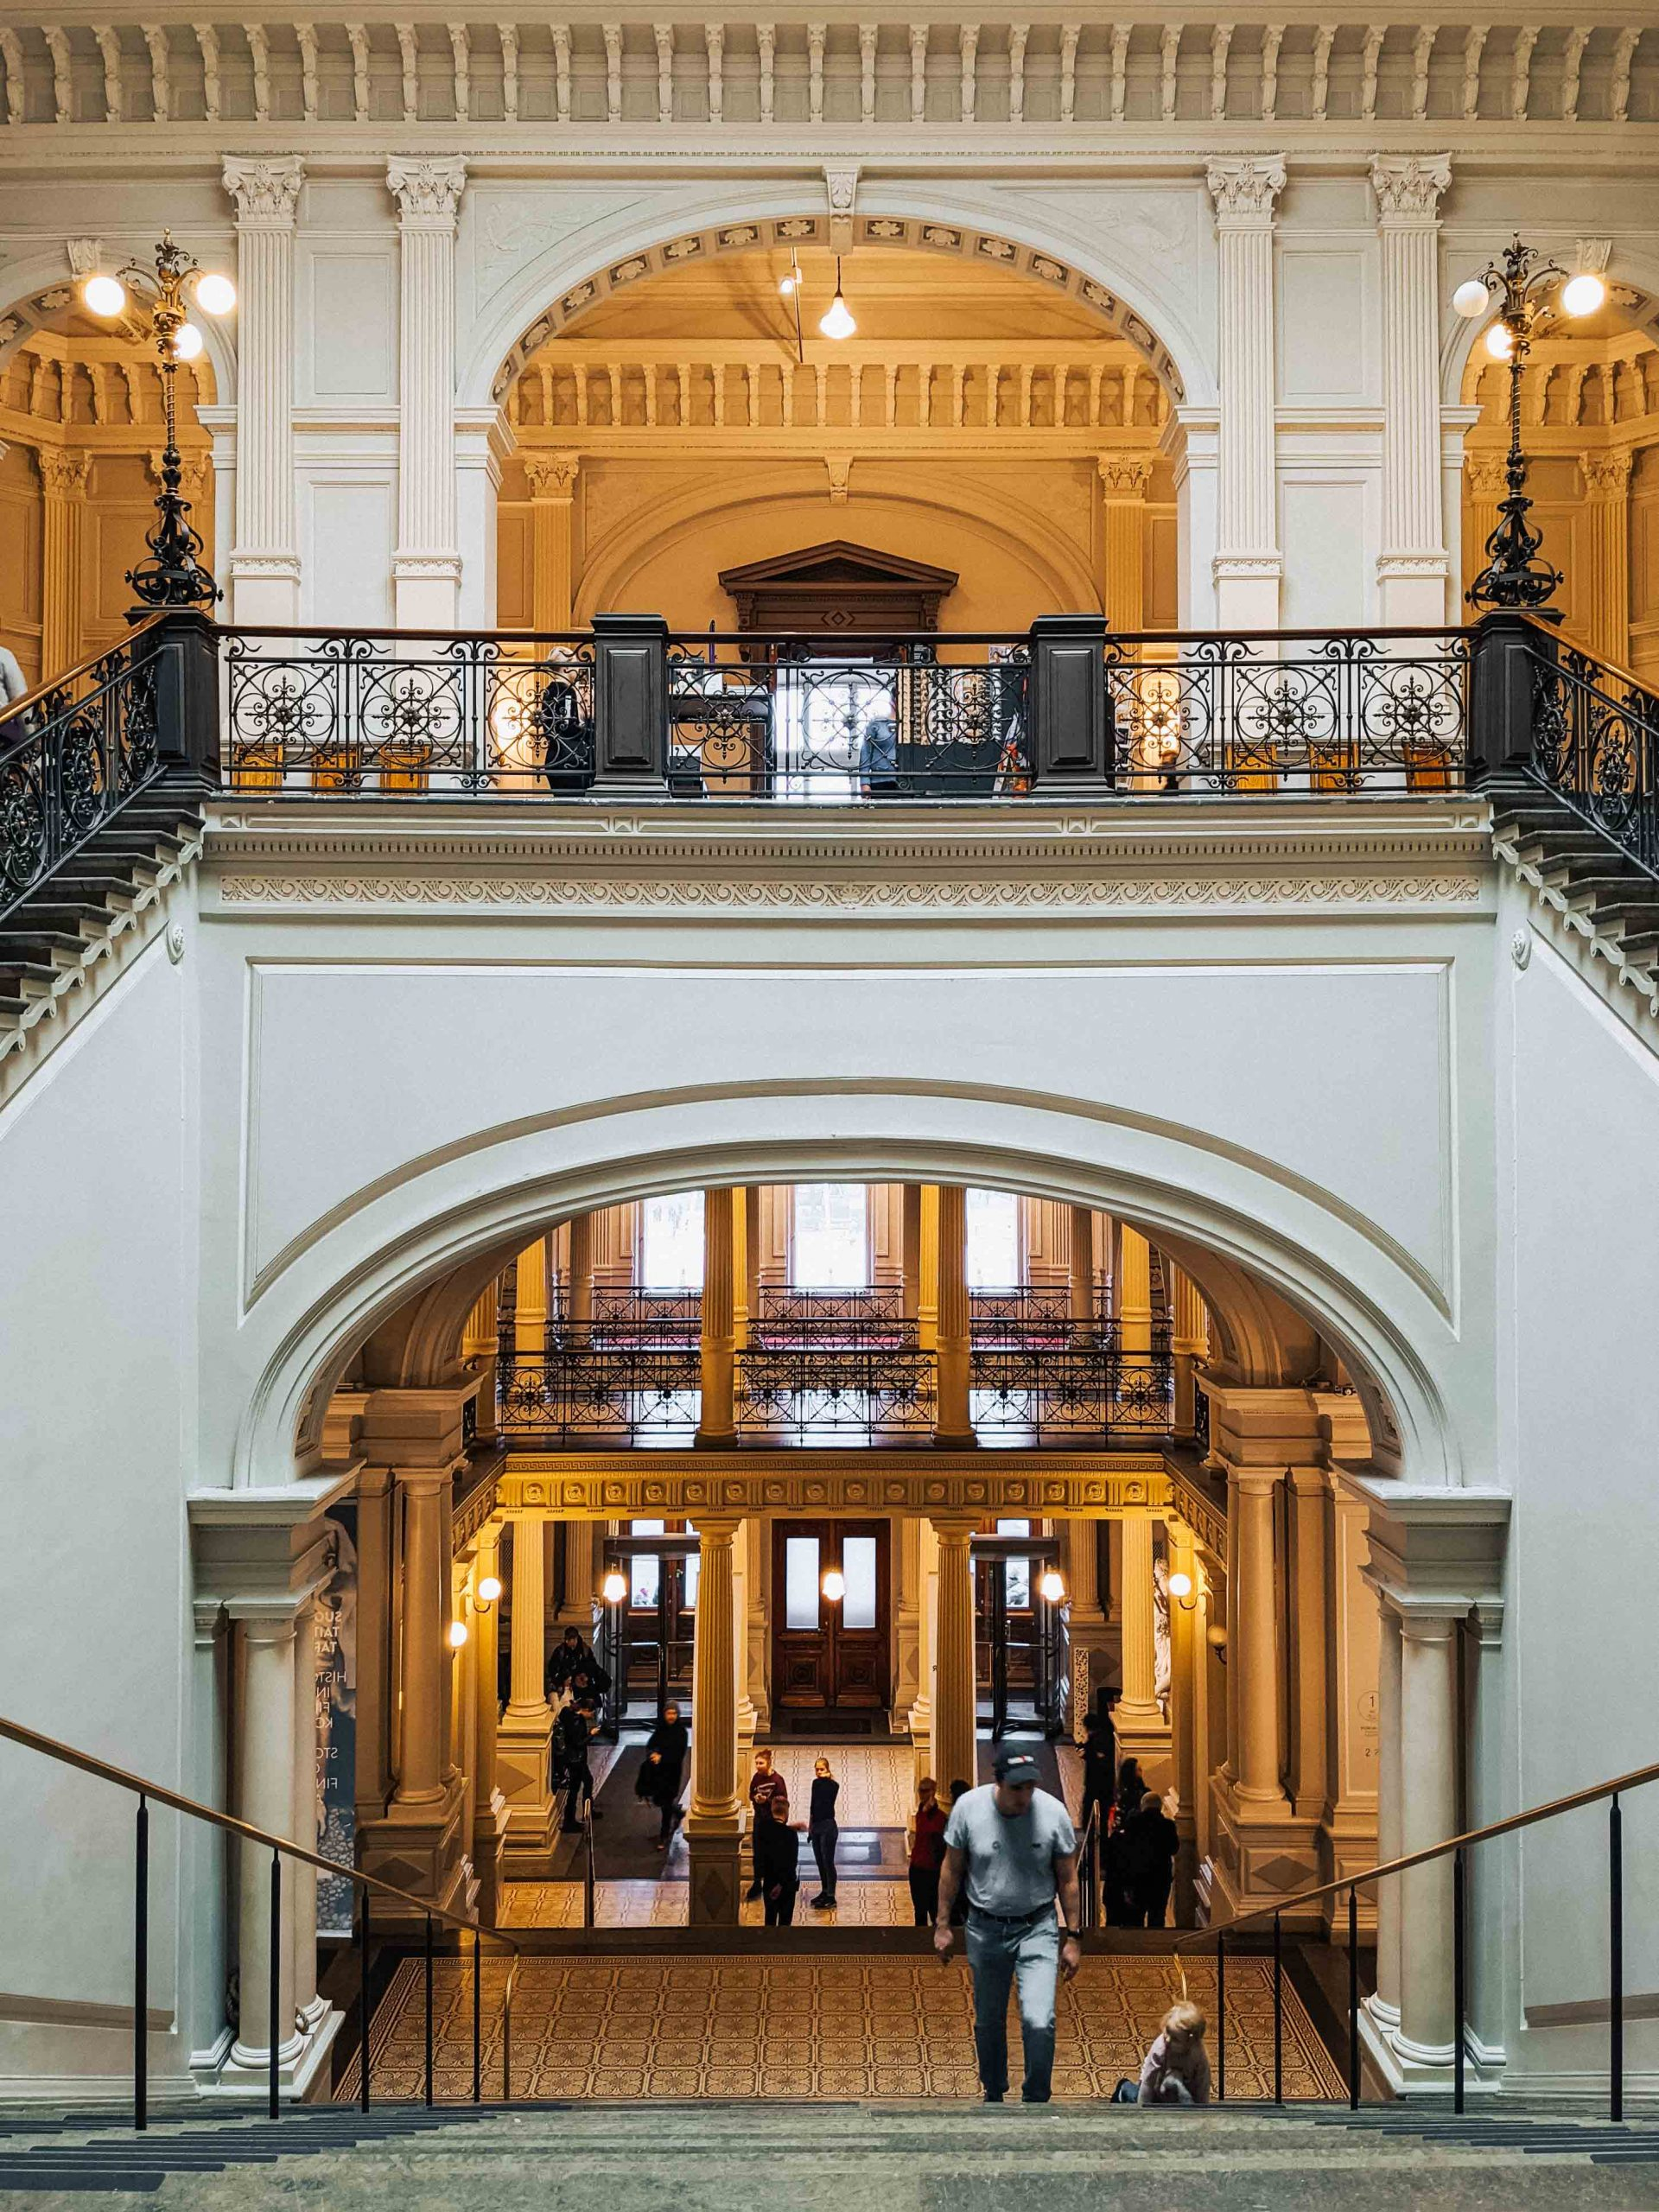 Ateneum art museum of Helsinki | What to do in Helsinki in winter by Mondomulia